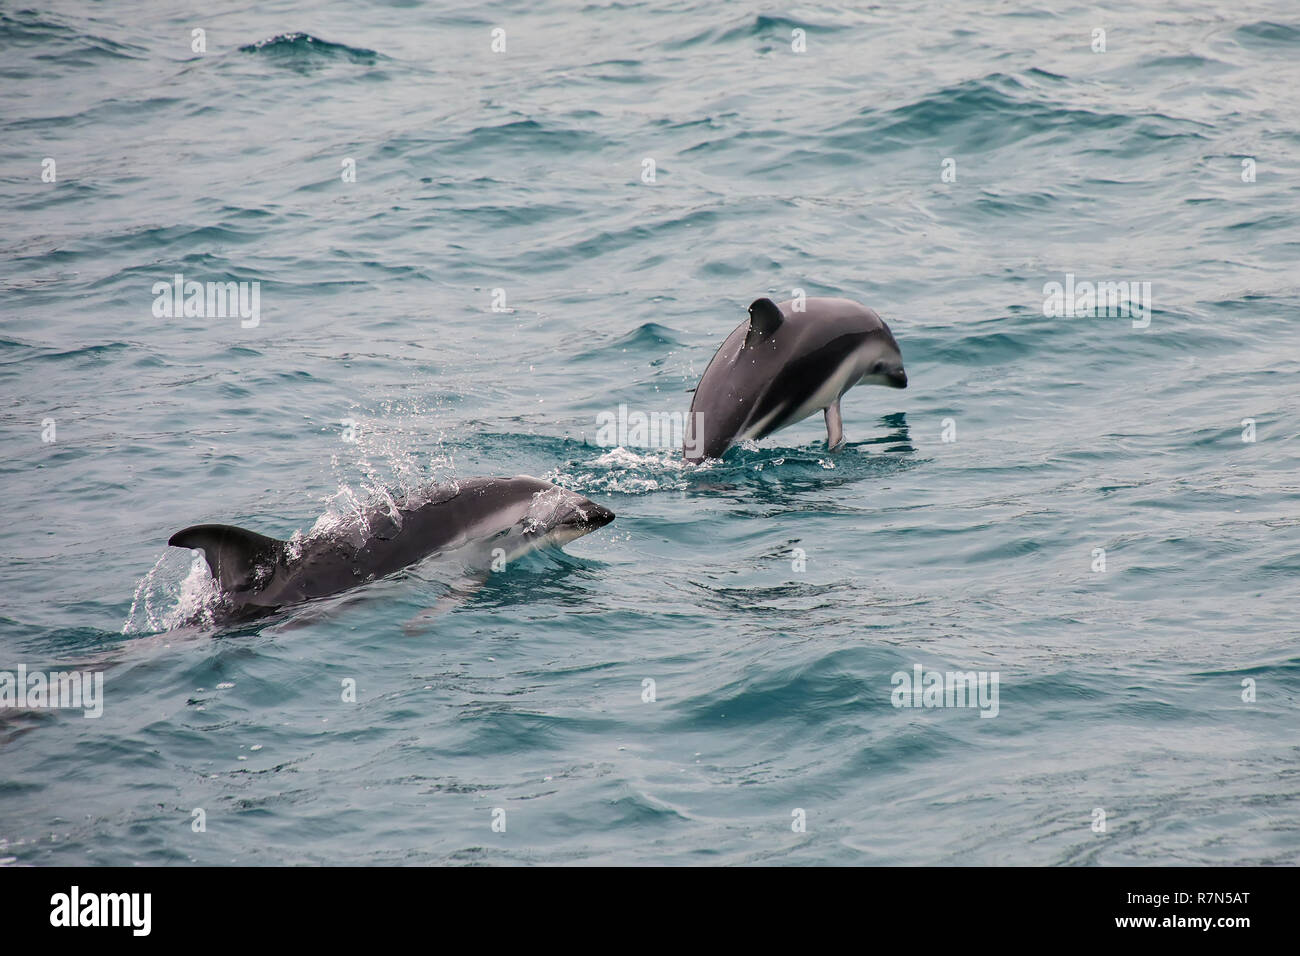 Dusky dolphins swimming off the coast of Kaikoura, New Zealand. Kaikoura is a popular tourist destination for watching and swimming with dolphins. - Stock Image